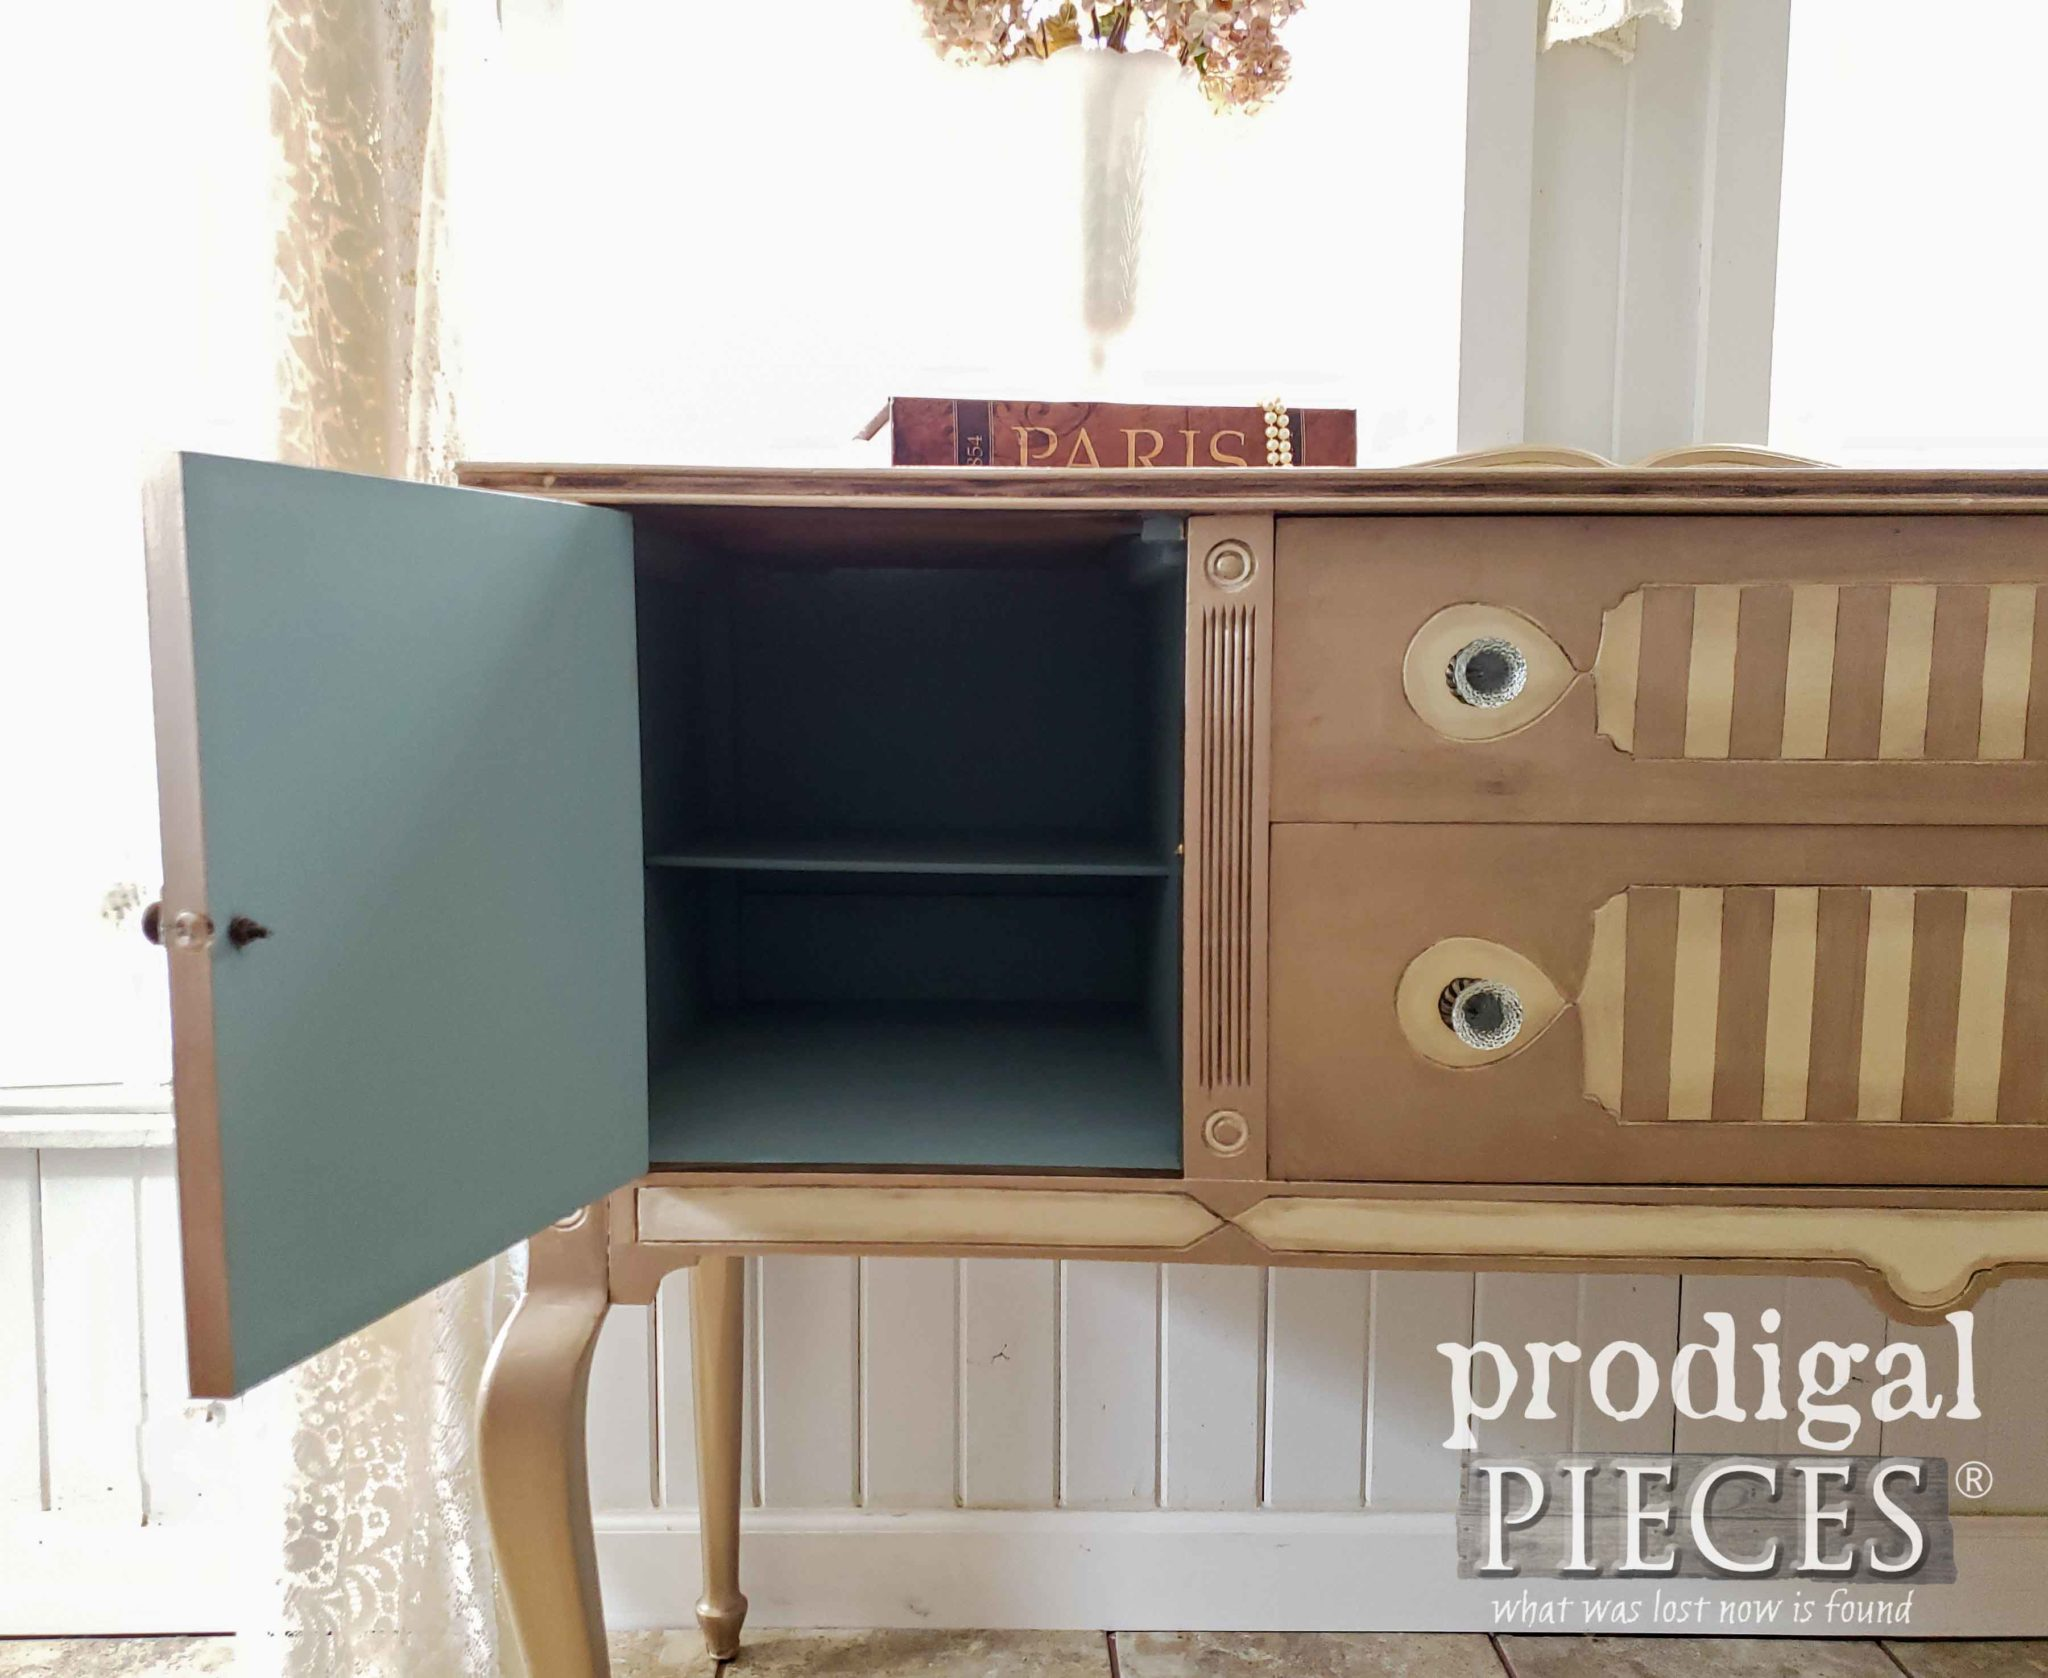 Blue Interior of Antique Buffet by Larissa of Prodigal Pieces | prodigalpieces.com #prodigalpieces #furniture #diy #home #homedecor #antique